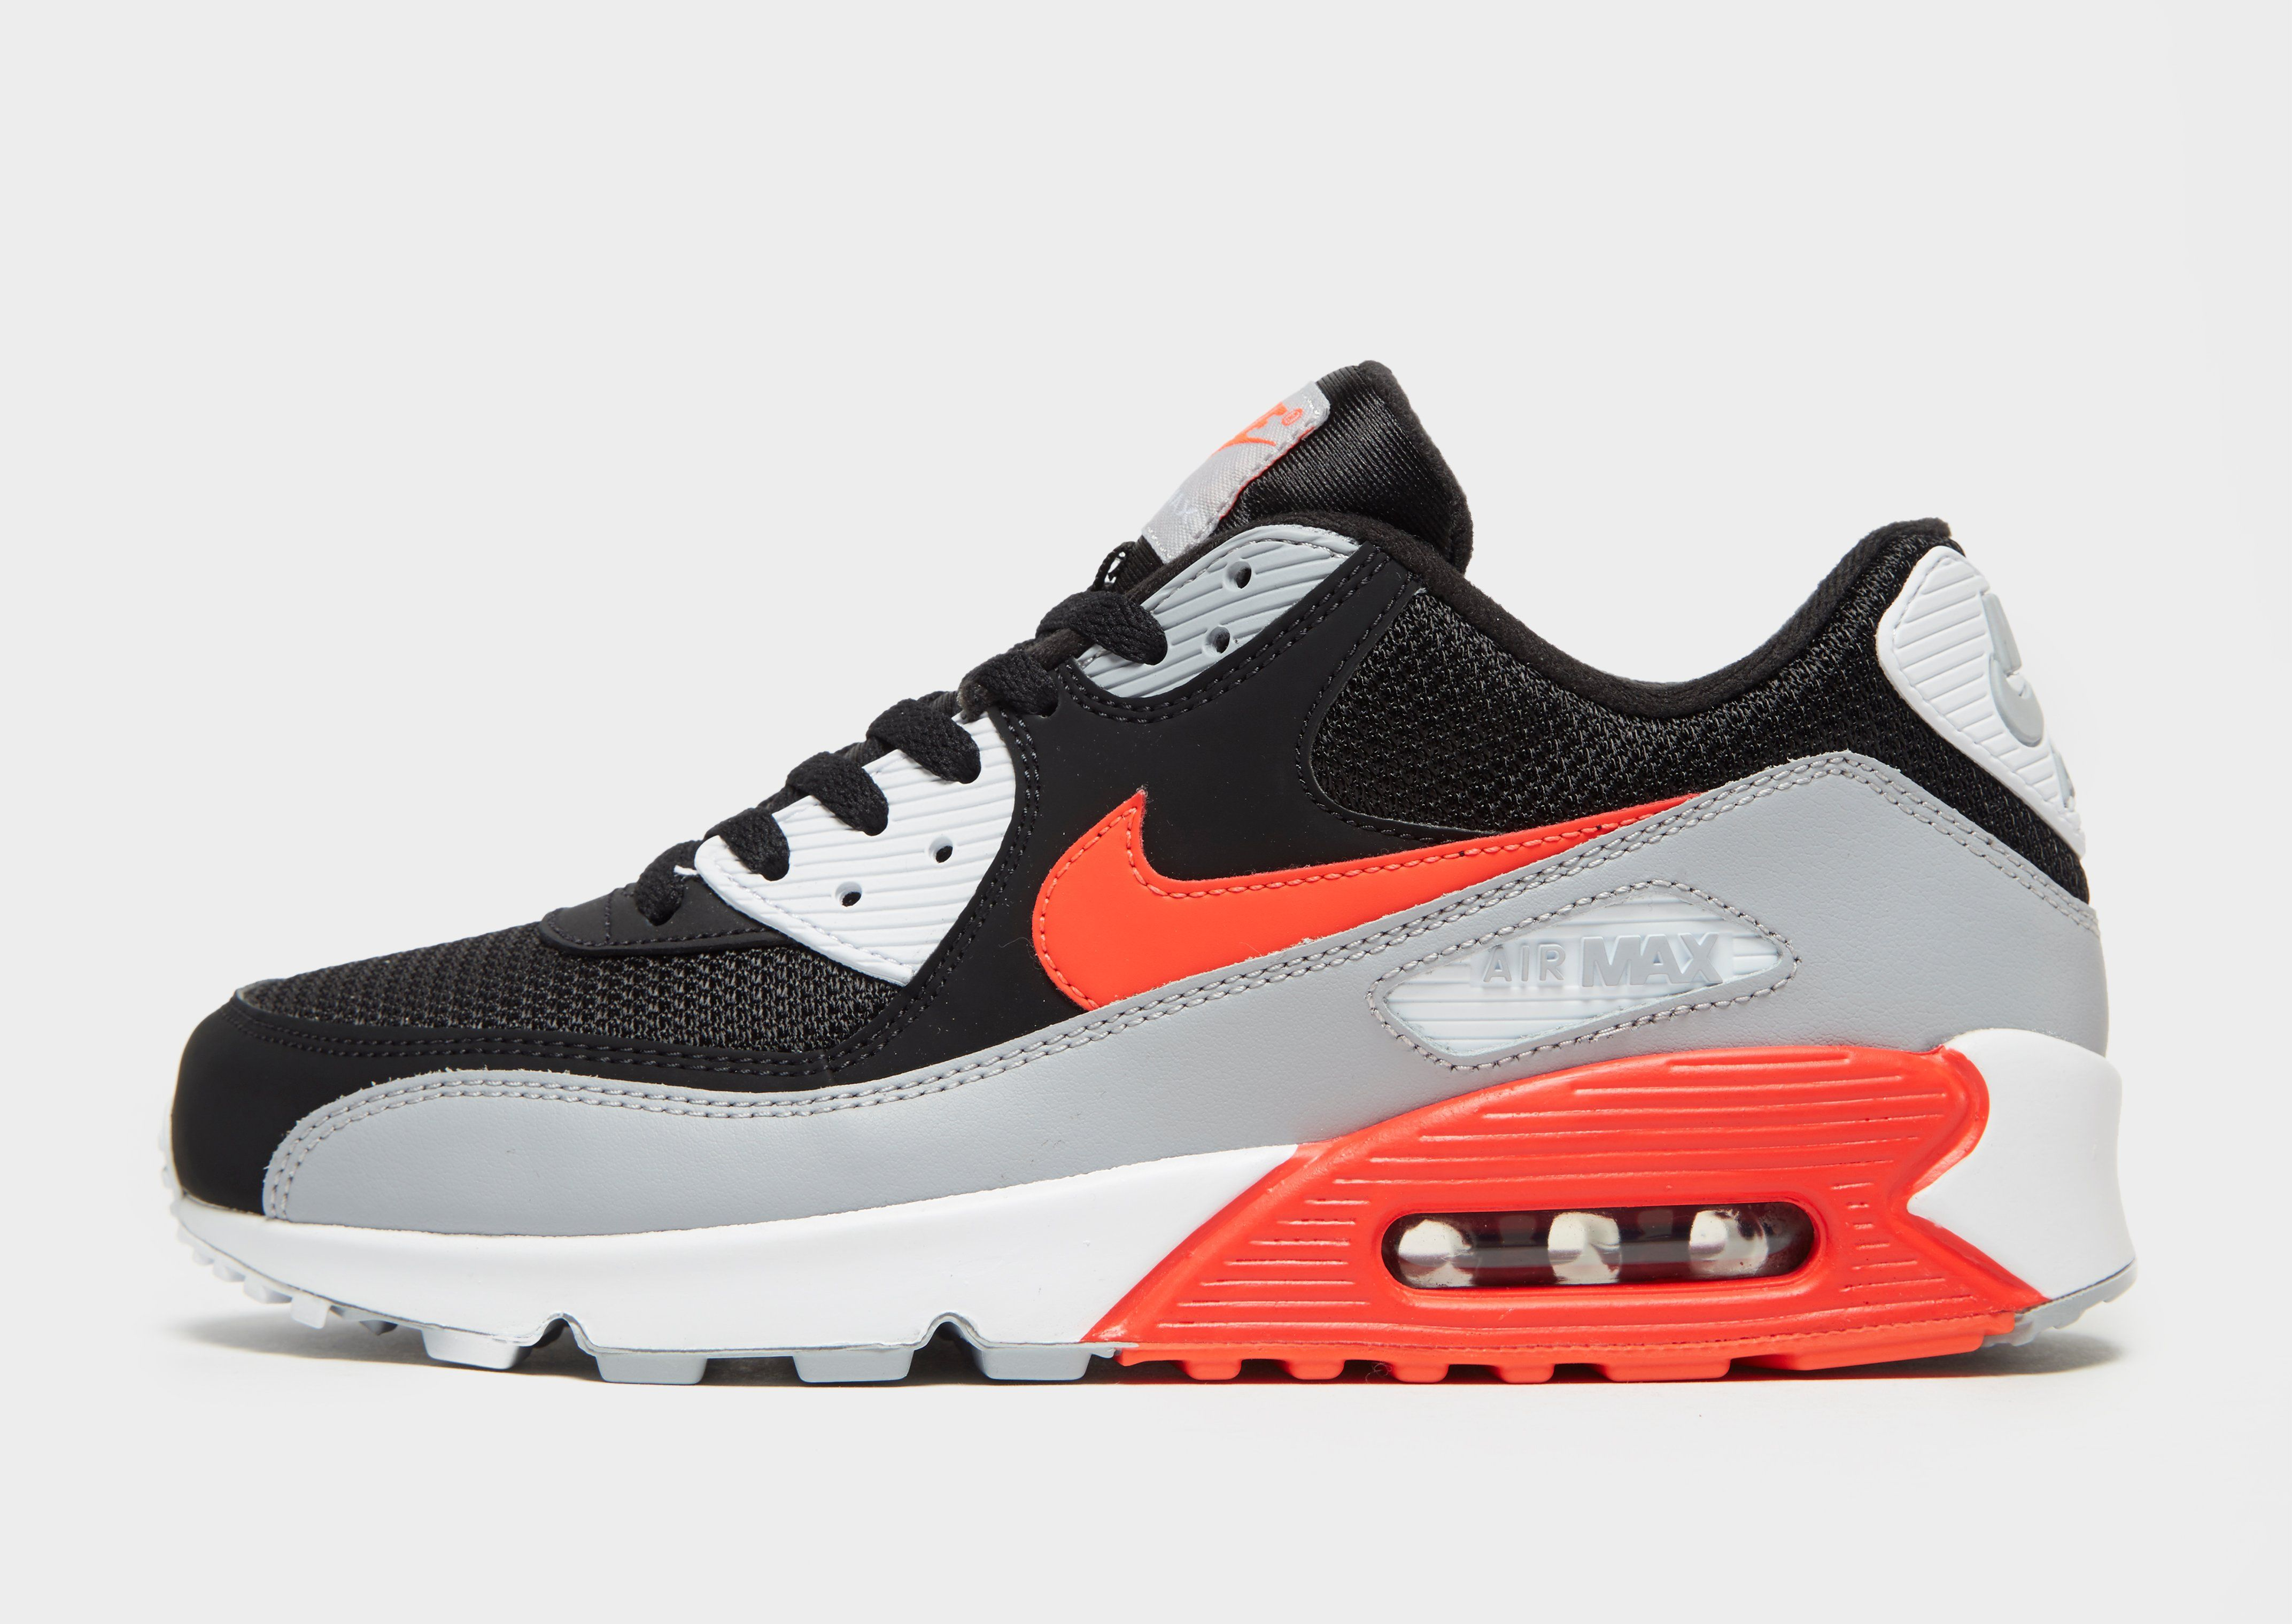 07c8173b63859e Nike Air Max 90 Essential OG